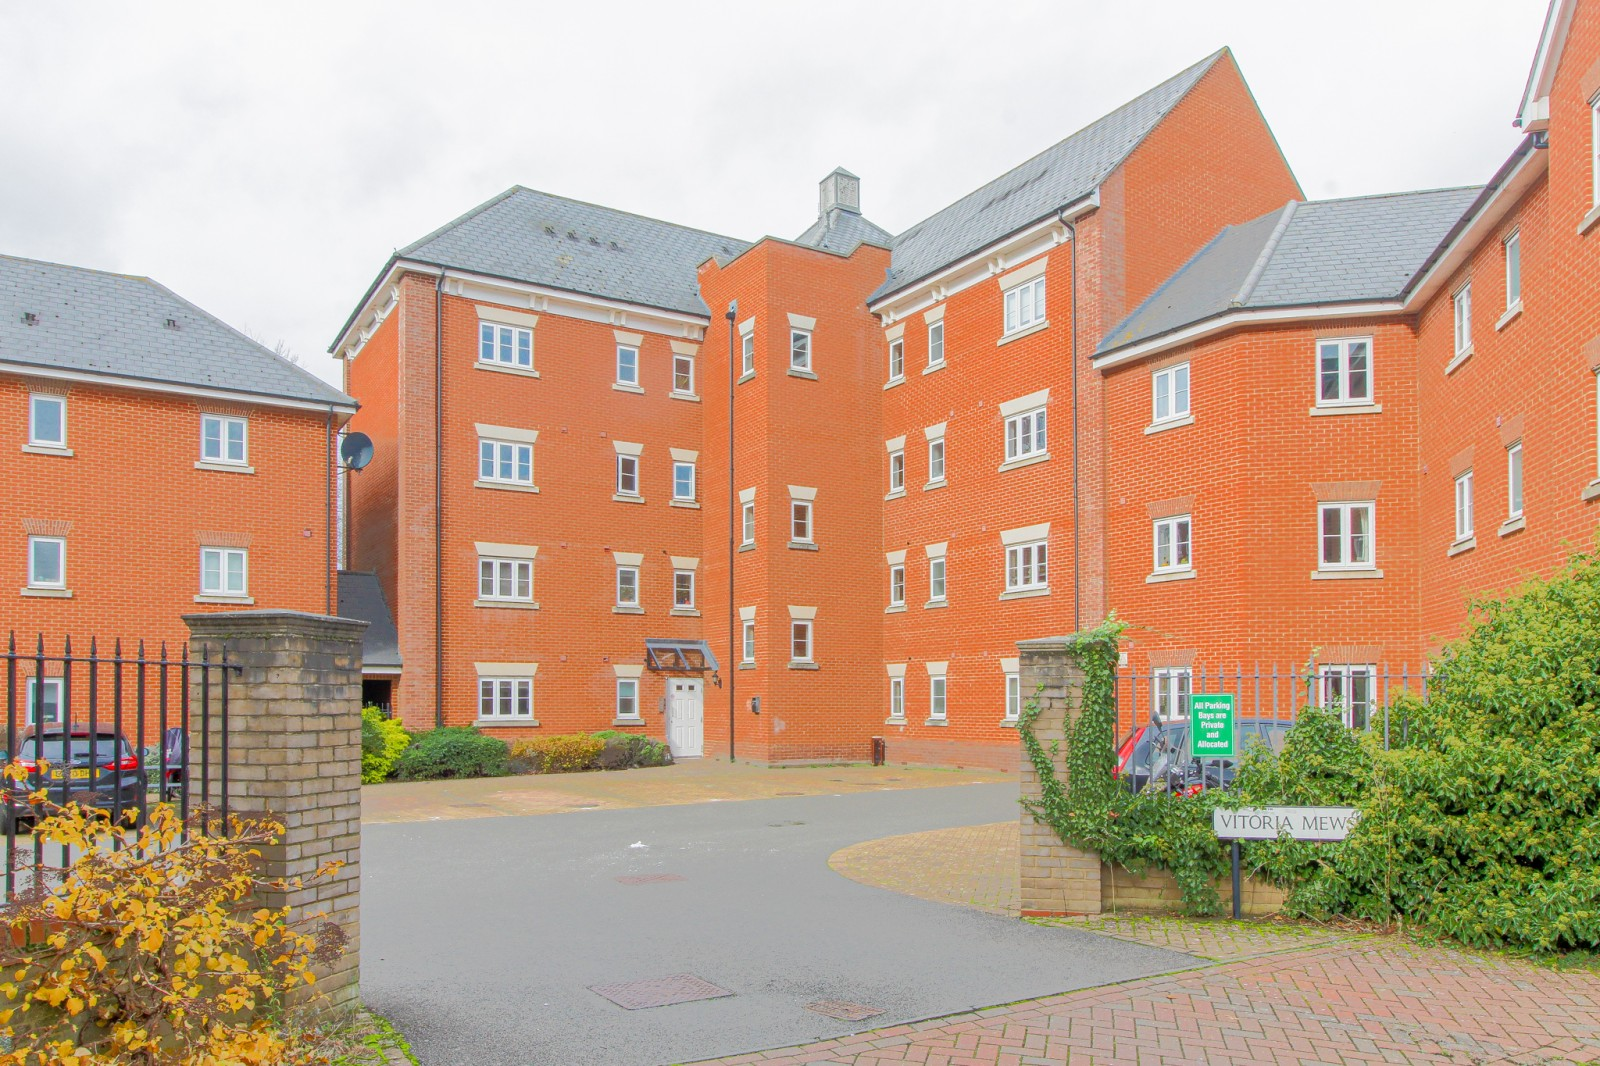 Vitoria Mews, Colchester, Essex, CO2